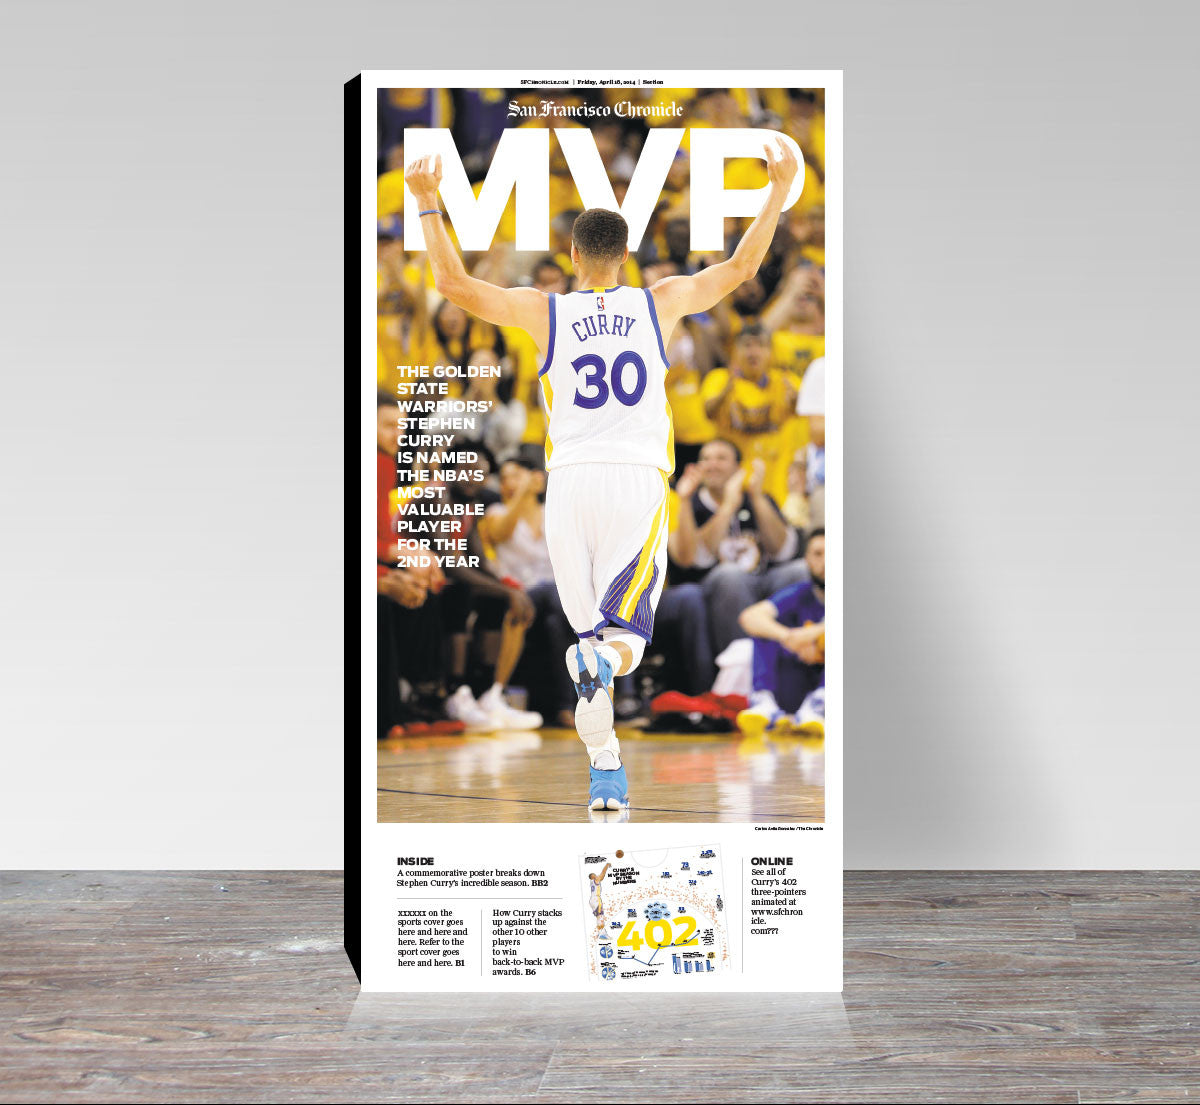 28abaea5 Golden State Warriors Steph Curry MVP print - San Francisco Chronicle  online store